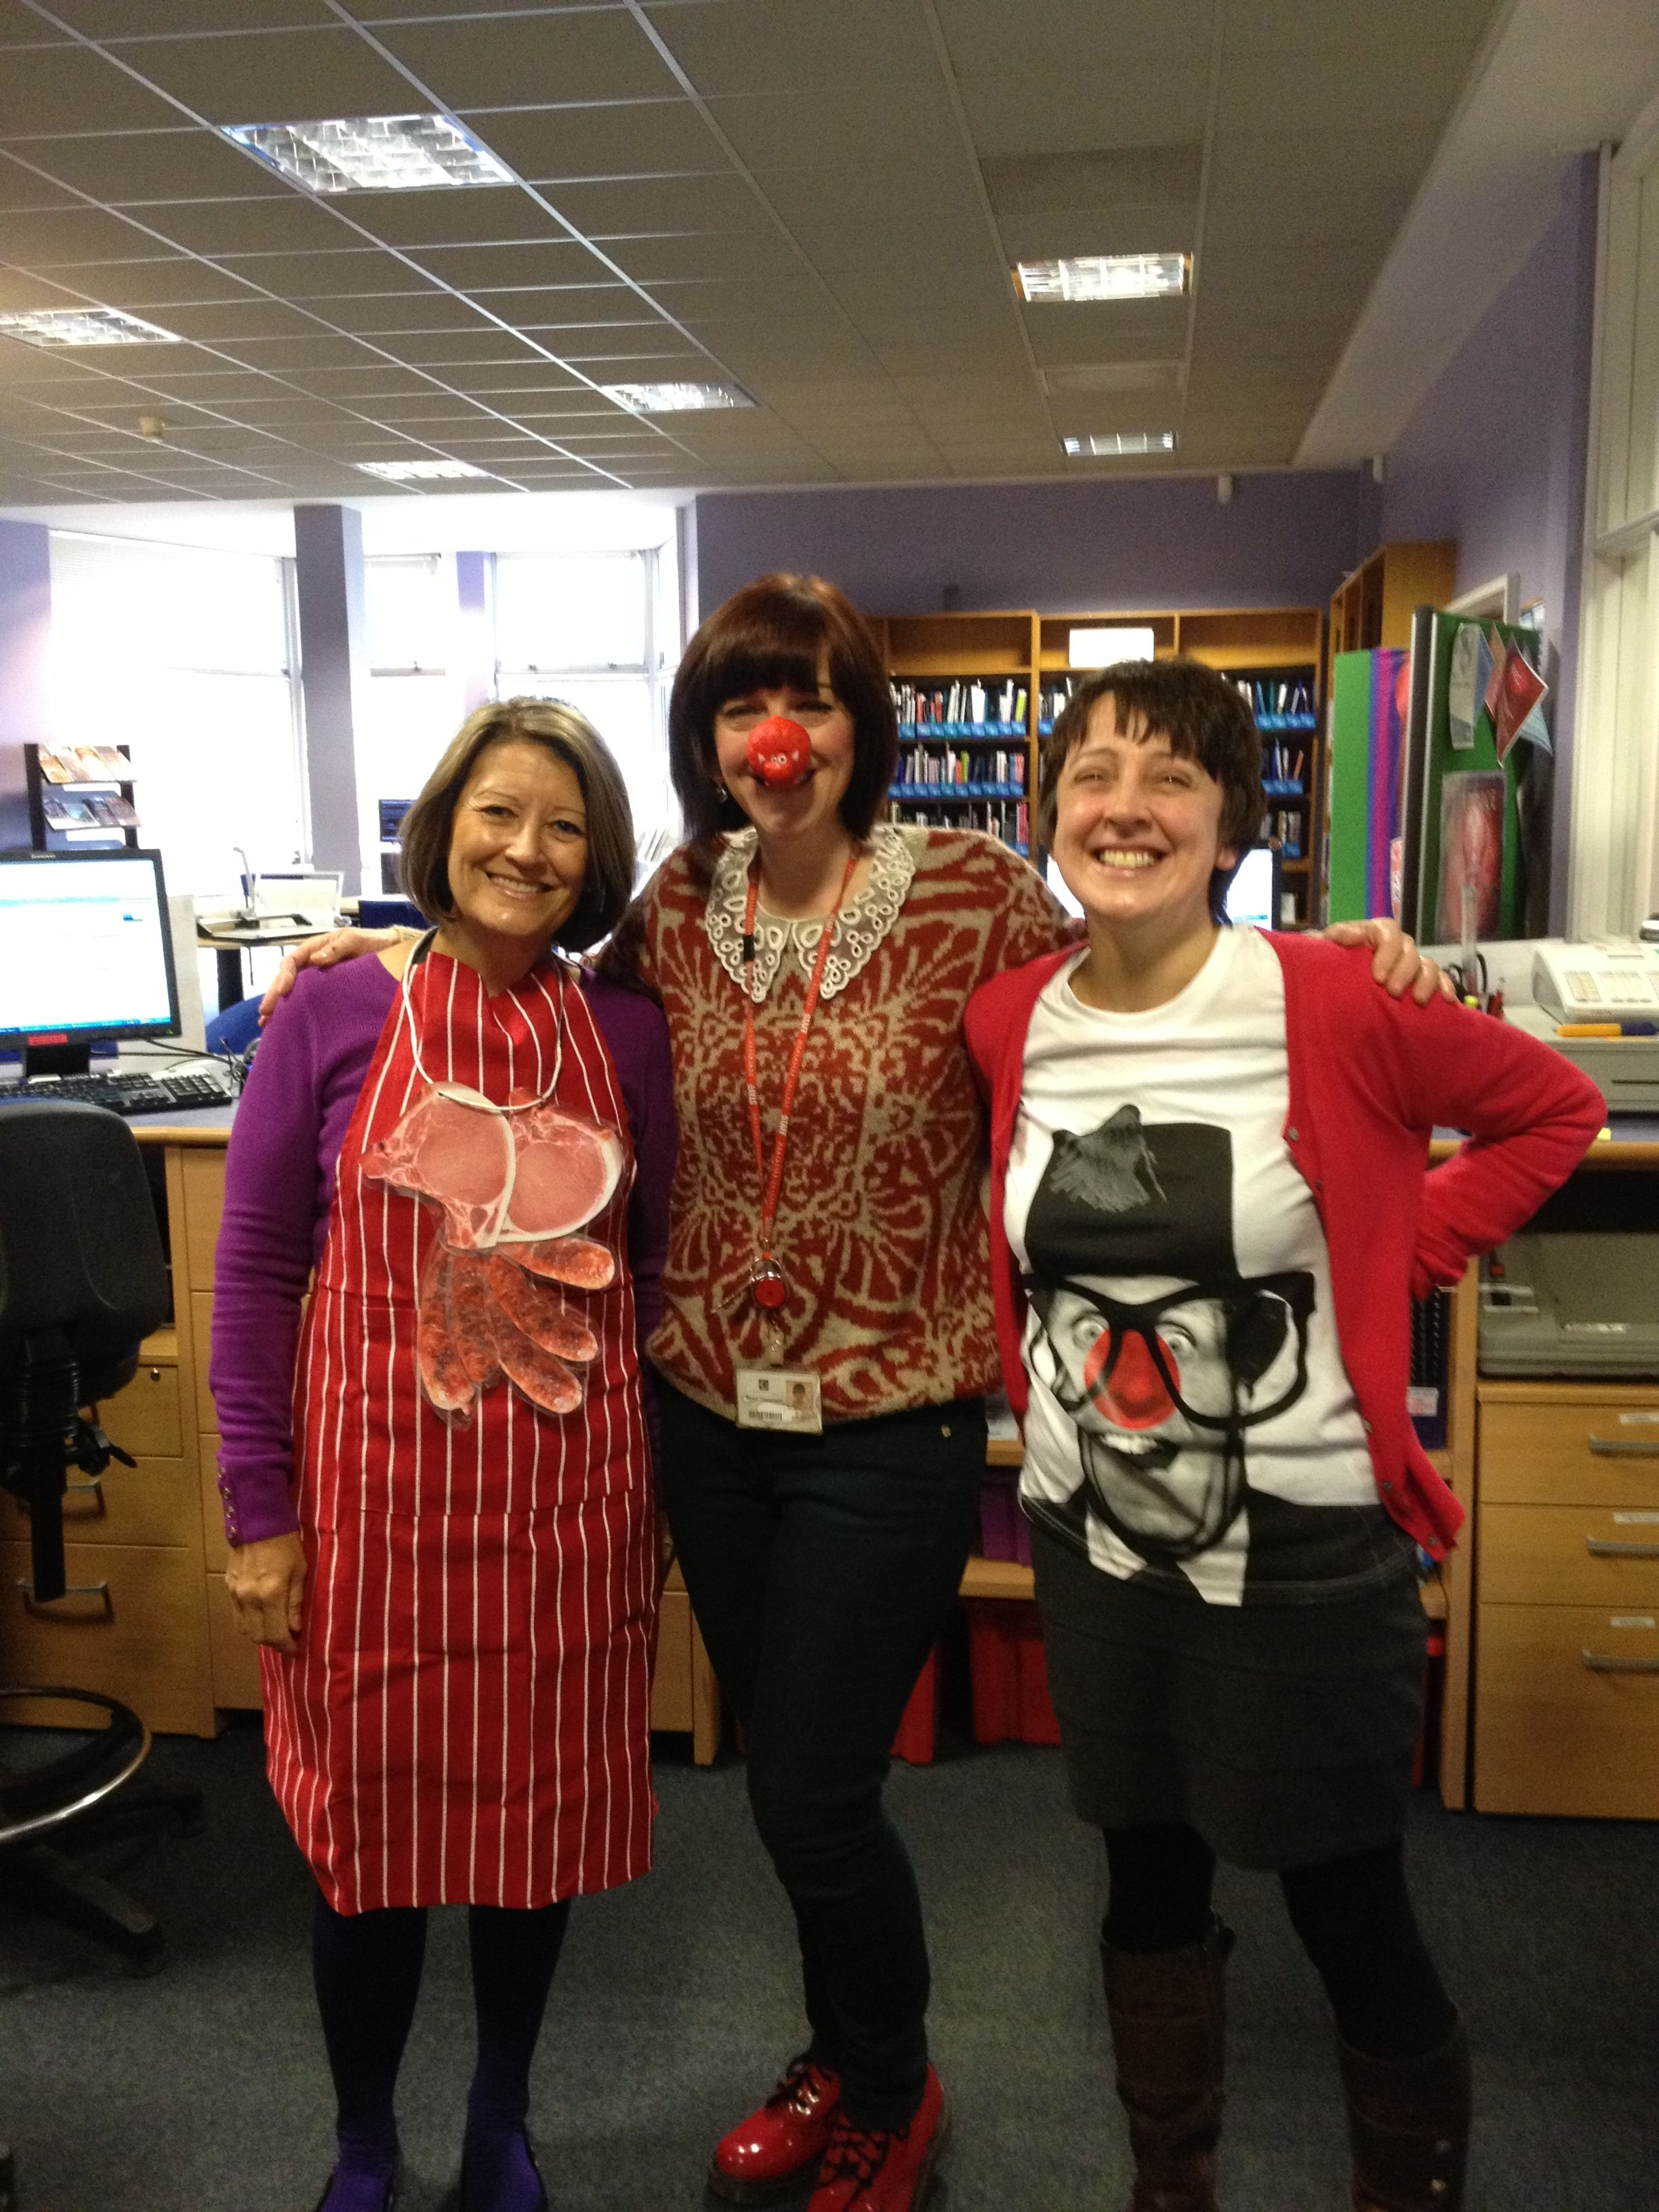 Red Nose day 2013 at The University Centre LRC